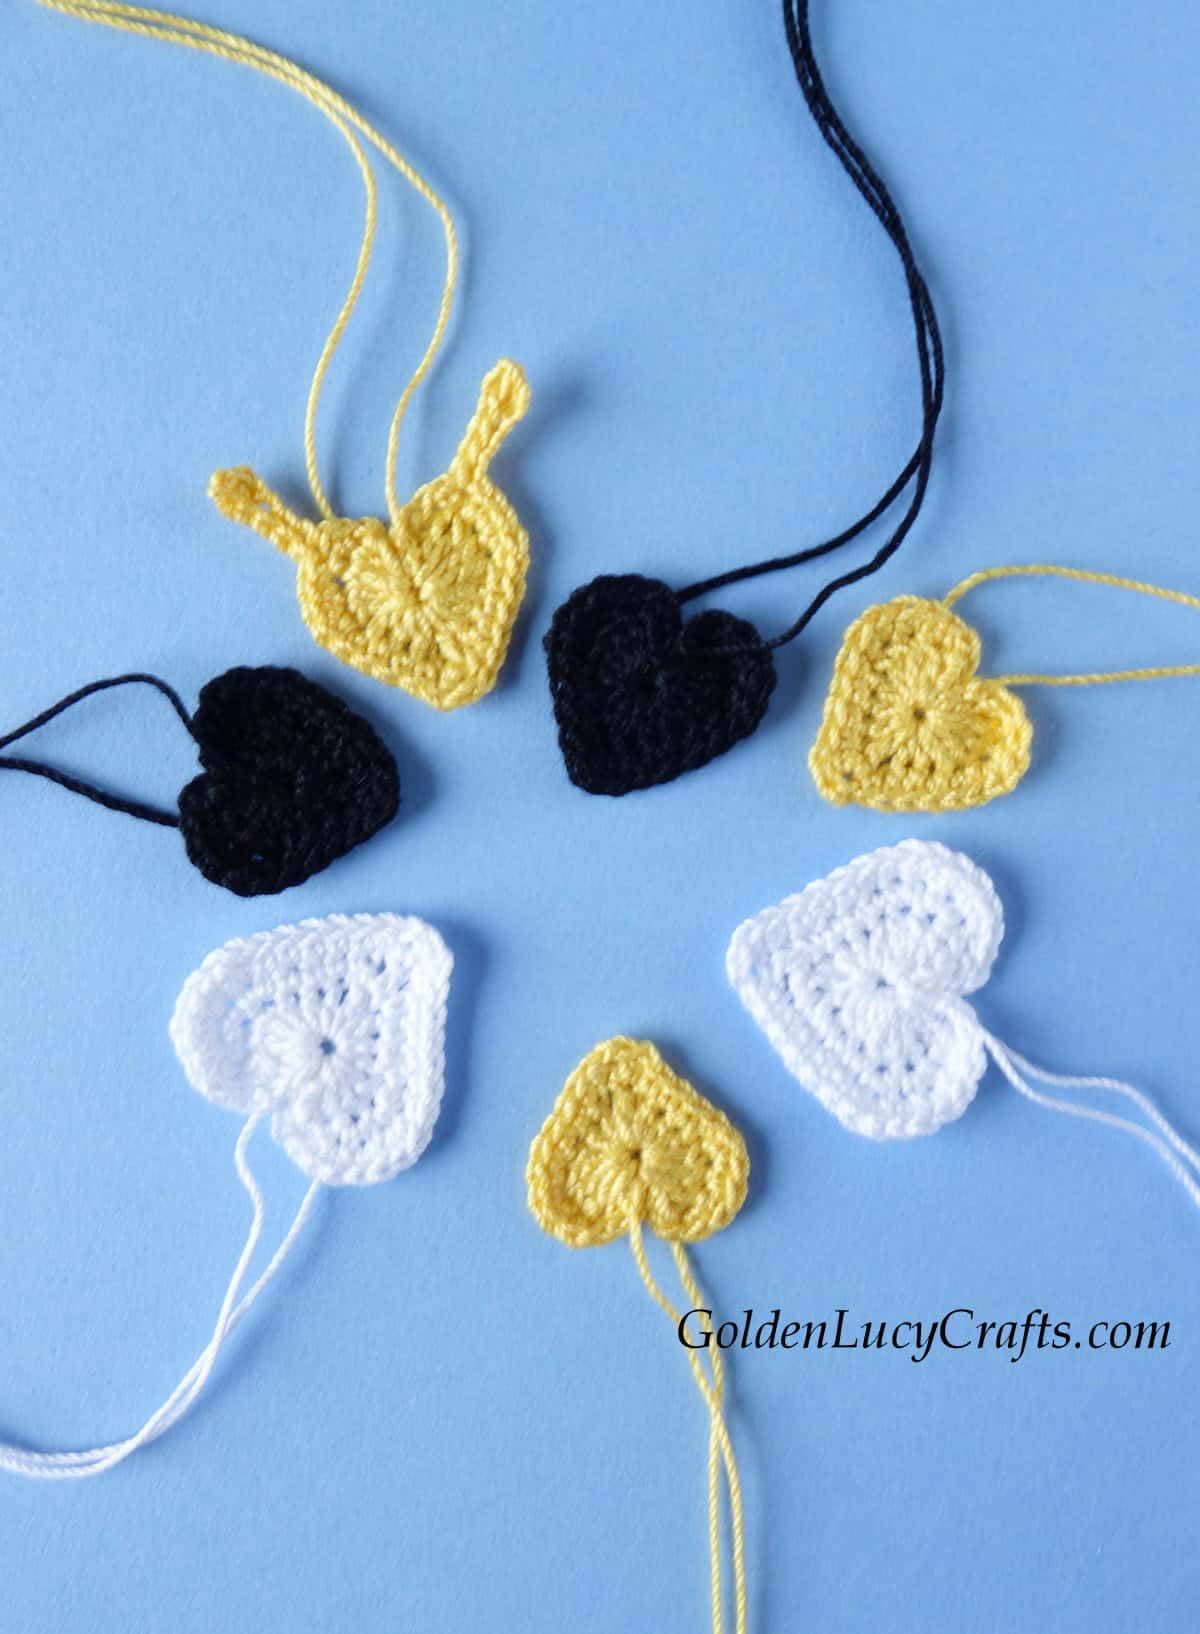 Pieces to make bee applique - crochet hearts in white, yellow and black colors.